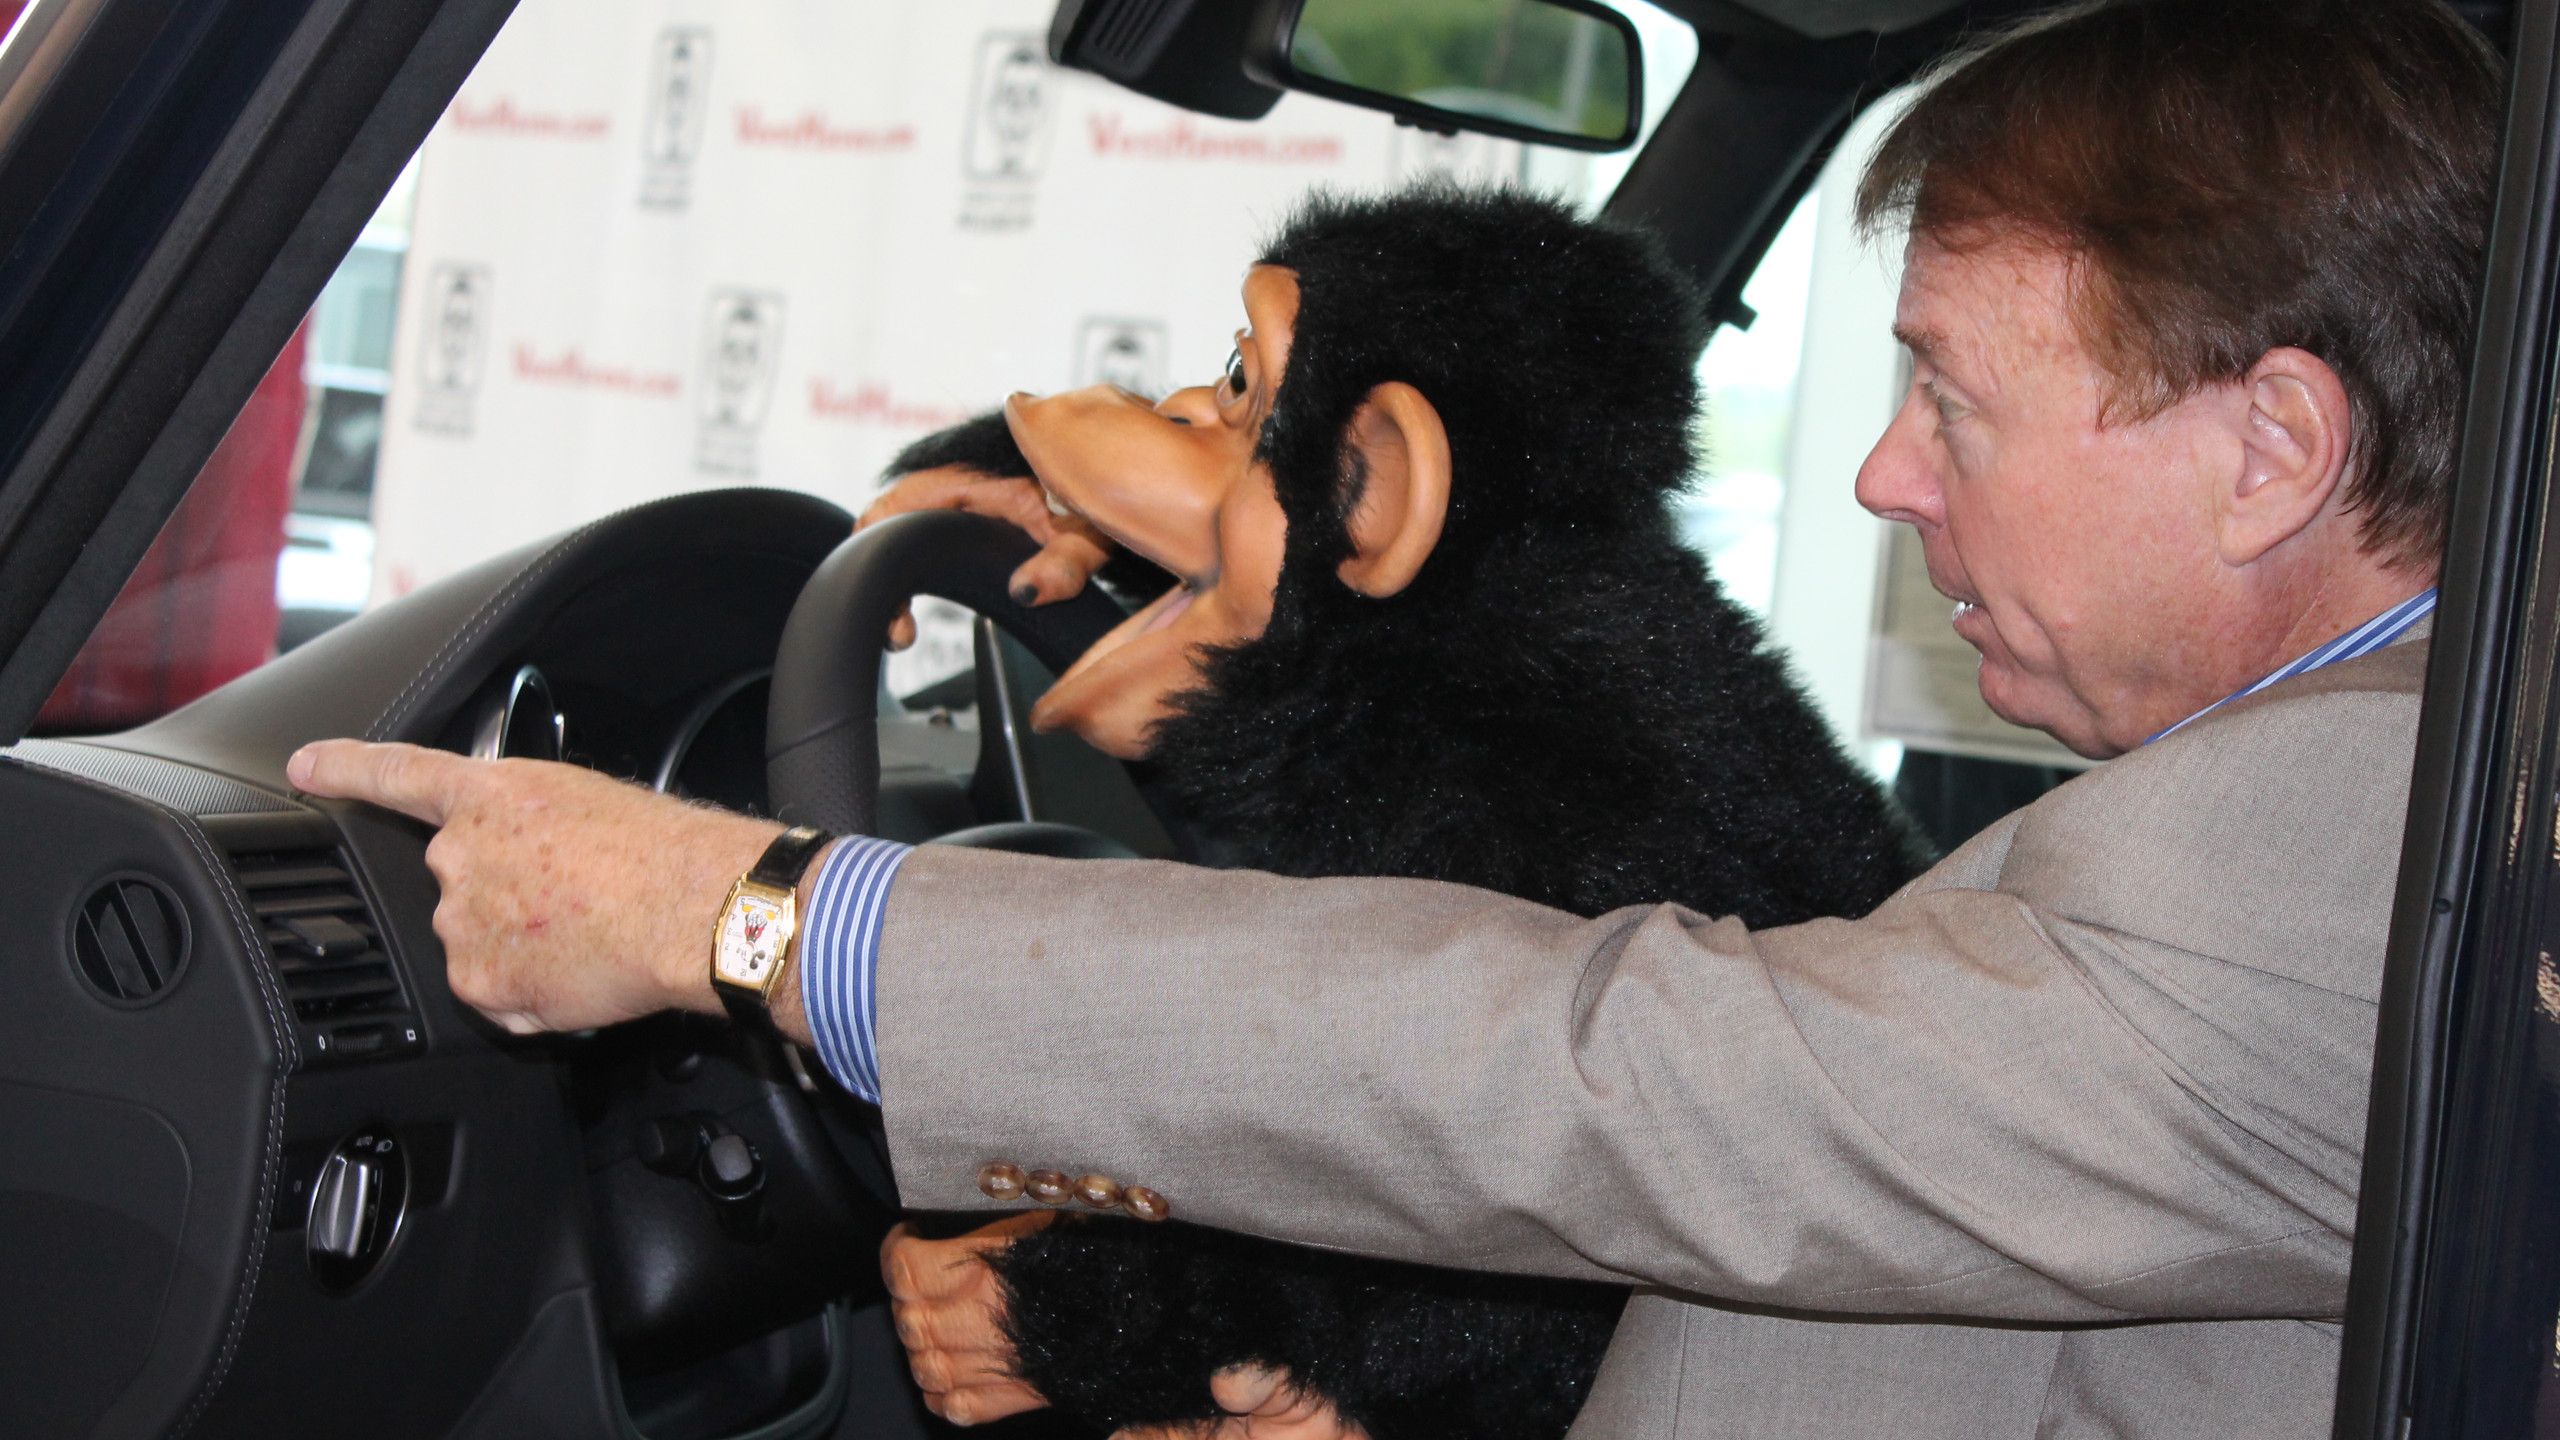 Keep your eye on the road, Monkey!